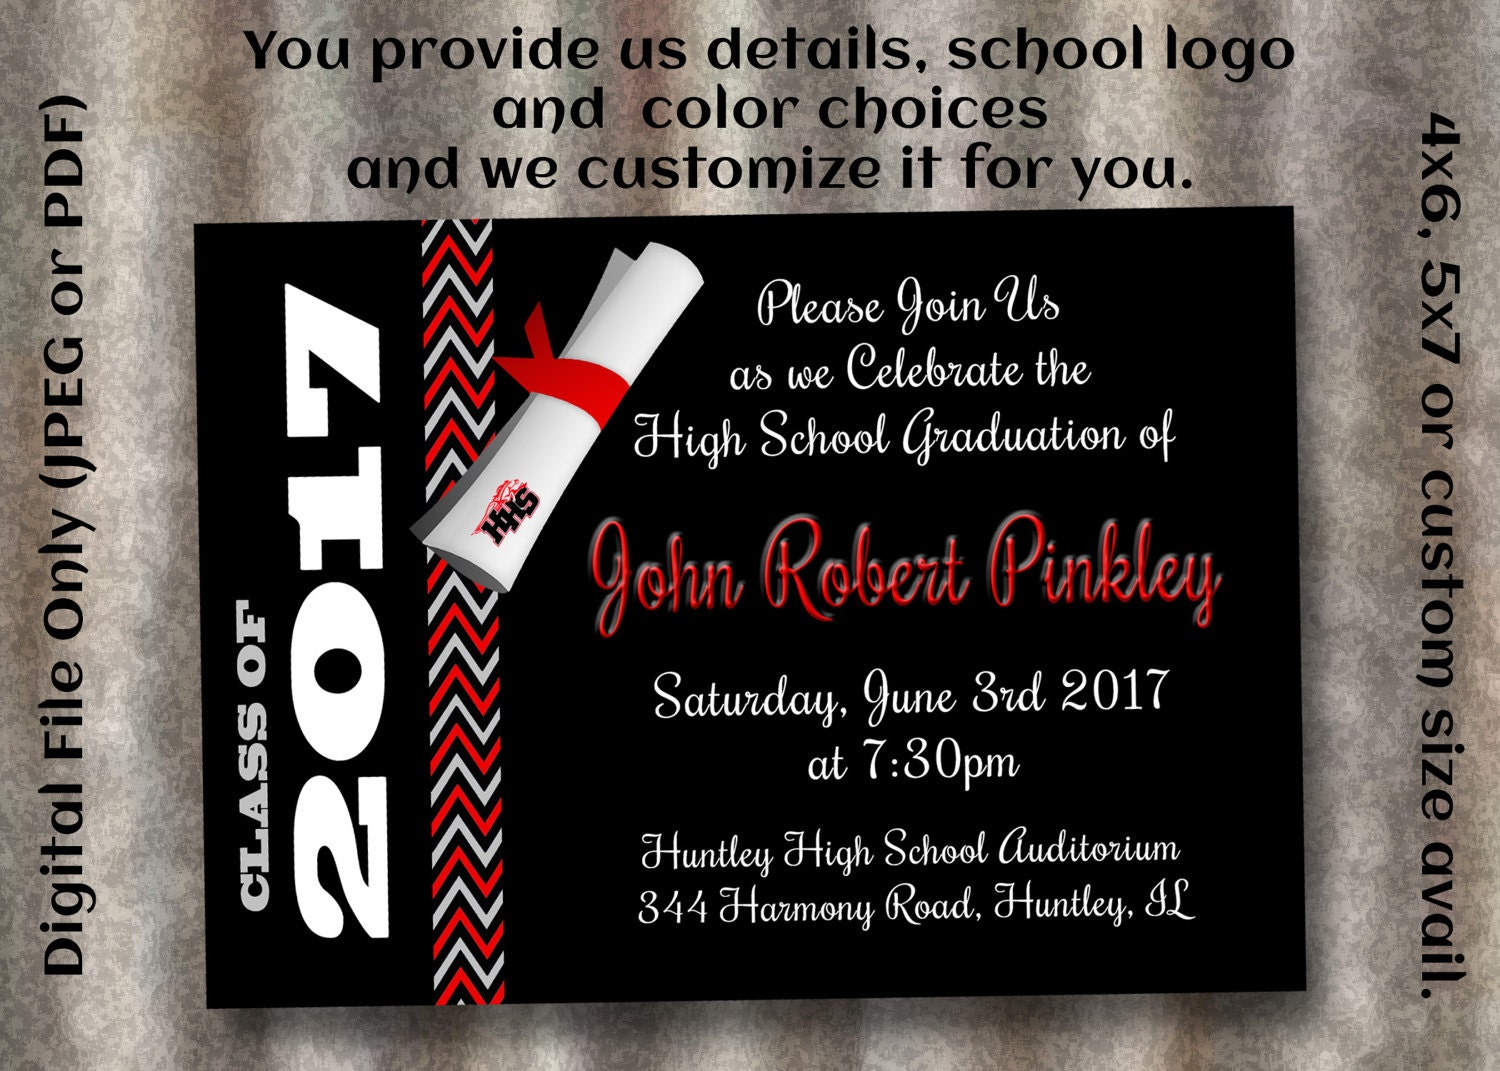 th grade graduation  etsy, invitation samples